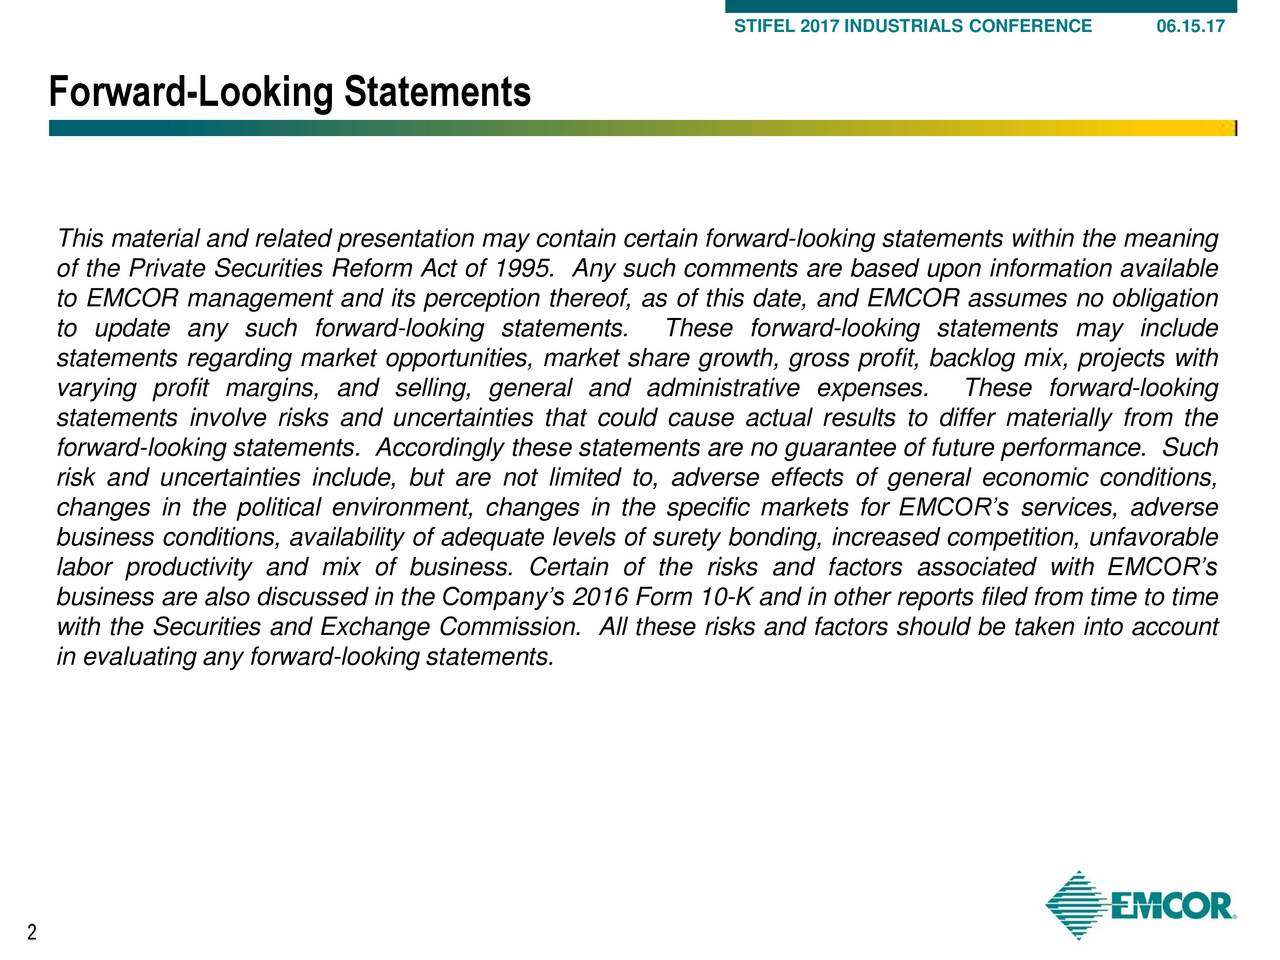 Forward-Looking Statements This material and related presentation may contain certain forward-looking statements within the meaning of the Private Securities Reform Act of 1995. Any such comments are based upon information available to EMCOR management and its perception thereof, as of this date, and EMCOR assumes no obligation to update any such forward-looking statements. These forward-looking statements may include statements regarding market opportunities, market share growth, gross profit, backlog mix, projects with varying profit margins, and selling, general and administrative expenses. These forward-looking statements involve risks and uncertainties that could cause actual results to differ materially from the forward-looking statements. Accordingly these statements are no guarantee of future performance. Such risk and uncertainties include, but are not limited to, adverse effects of general economic conditions, changes in the political environment, changes in the specific markets for EMCORs services, adverse business conditions, availability of adequate levels of surety bonding, increased competition, unfavorable labor productivity and mix of business. Certain of the risks and factors associated with EMCORs business are also discussed in the Companys 2016 Form 10-K and in other reports filed from time to time with the Securities and Exchange Commission. All these risks and factors should be taken into account in evaluating any forward-looking statements. 2